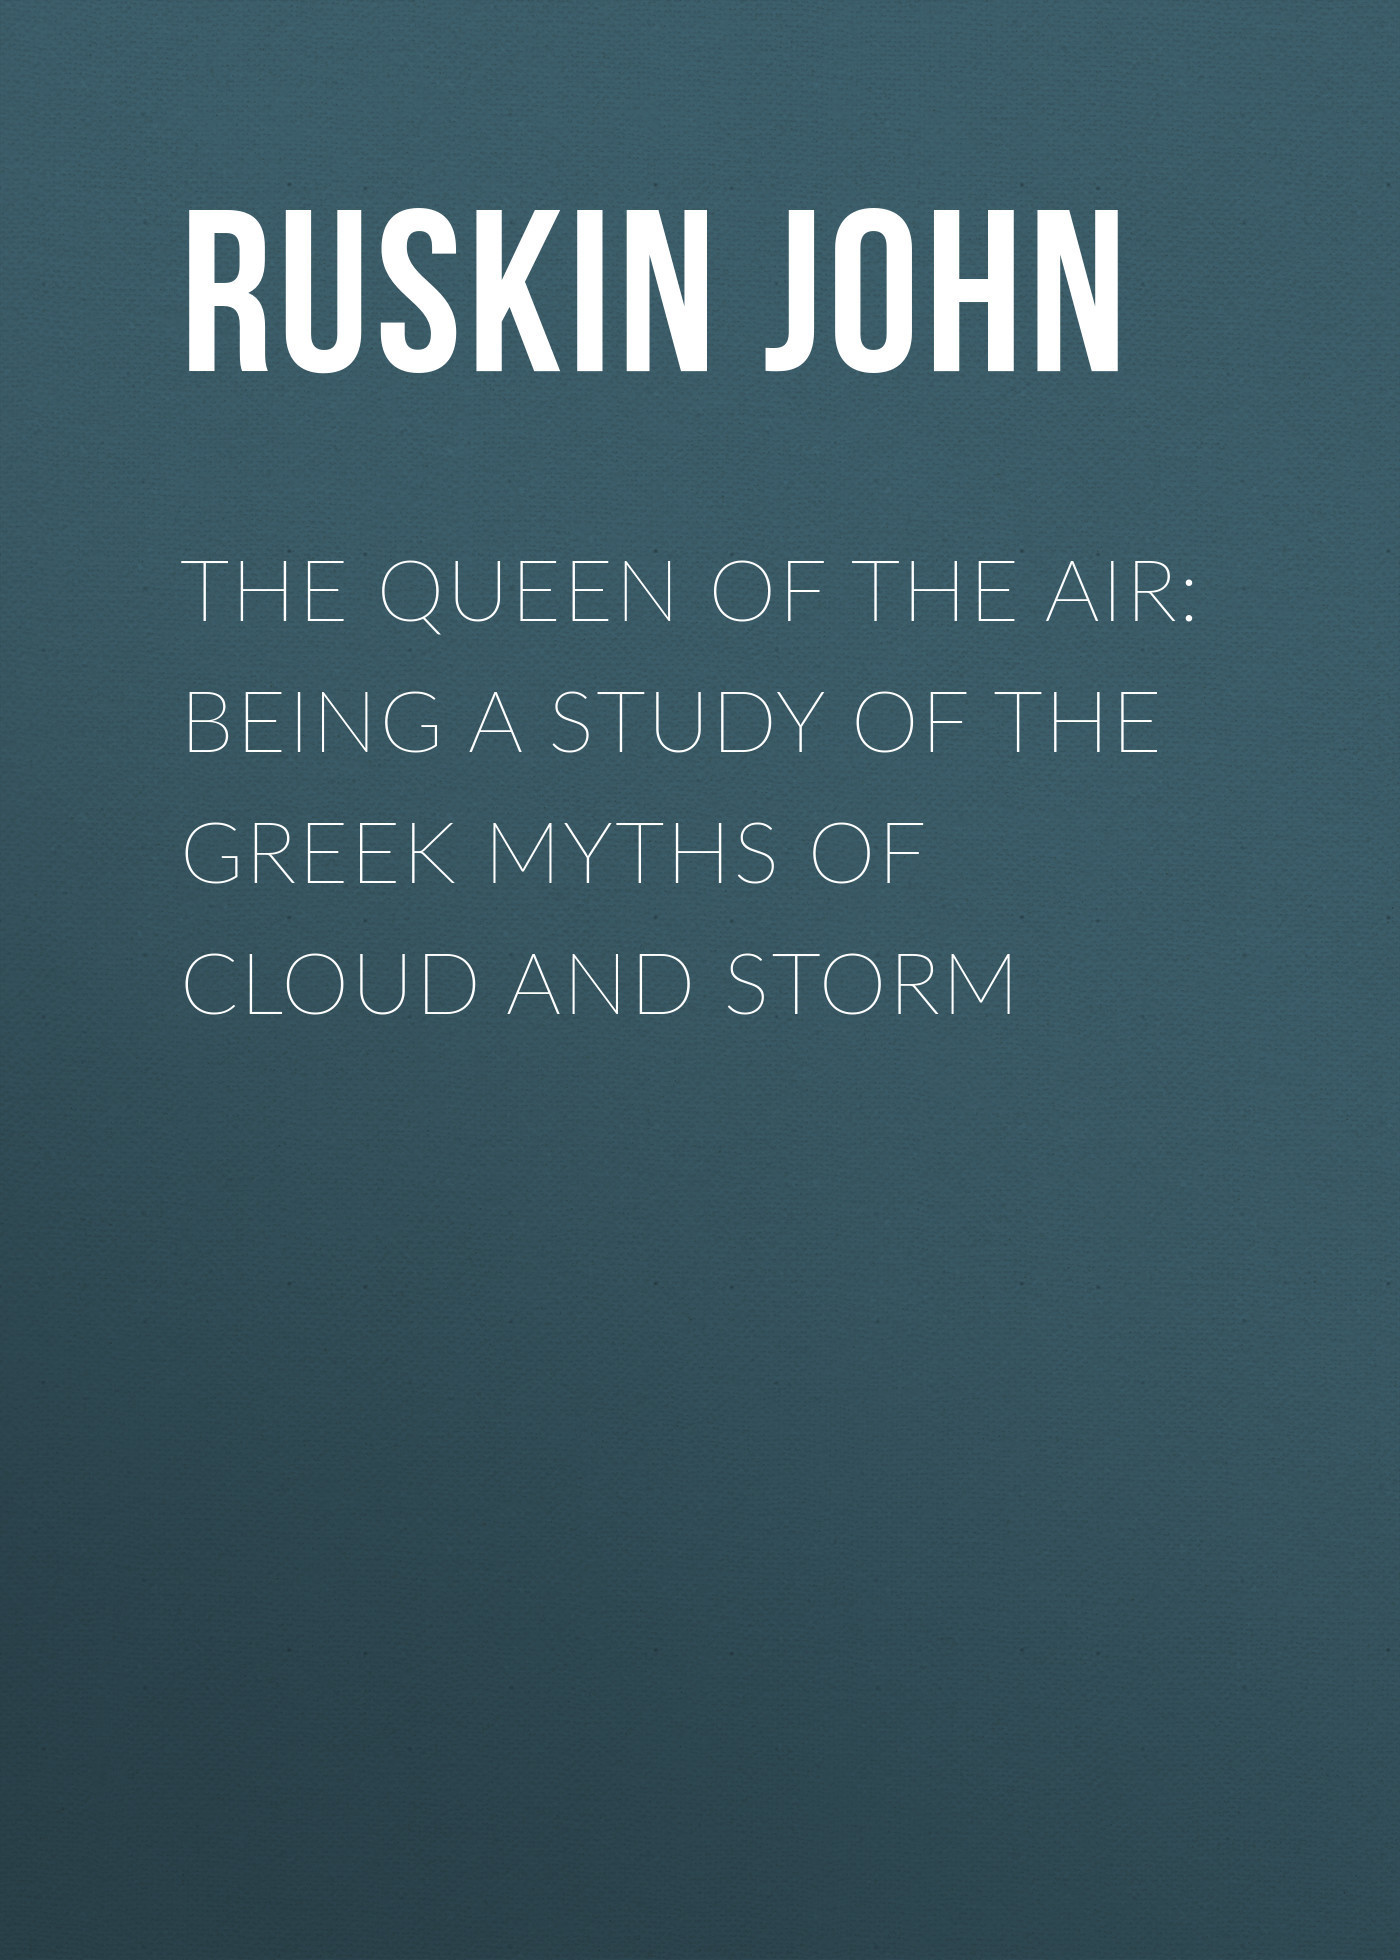 Ruskin John The Queen of the Air: Being a Study of the Greek Myths of Cloud and Storm sticker greek myths